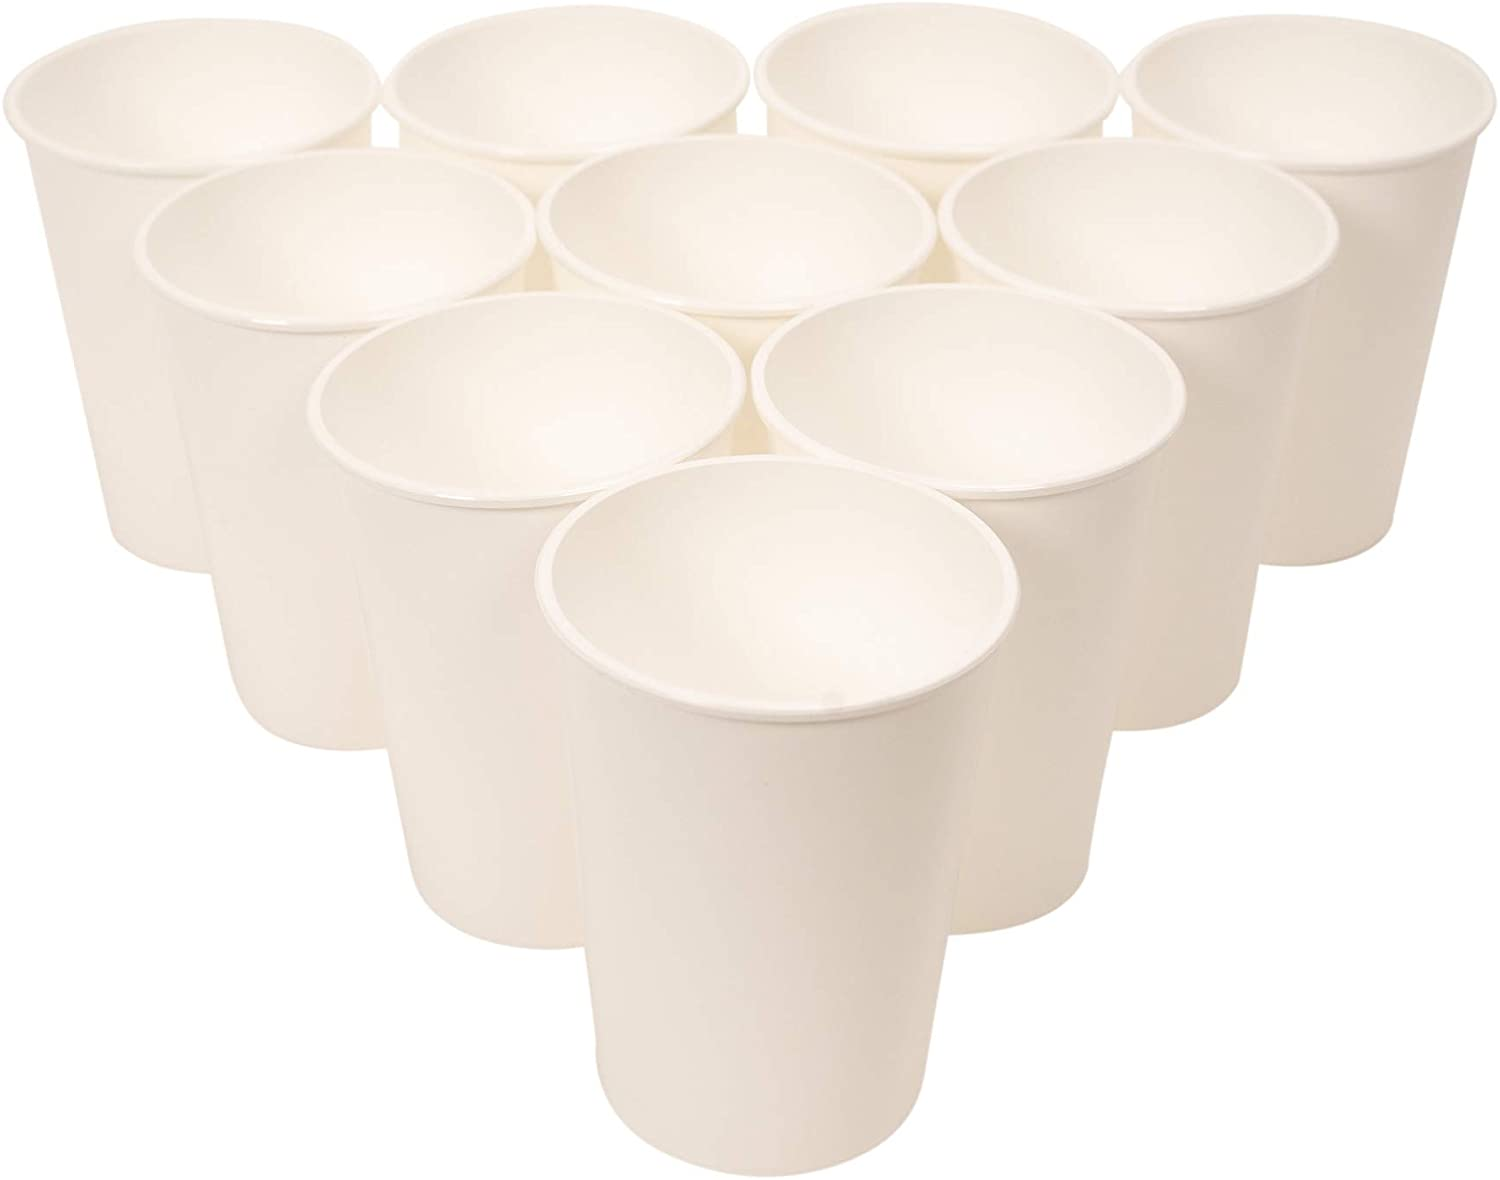 CSBD Stadium 12 oz. Plastic Cups, 10 Pack, Blank Reusable Drink Tumblers for Parties, Events, Marketing, Weddings, DIY Projects or BBQ Picnics, No BPA (White)